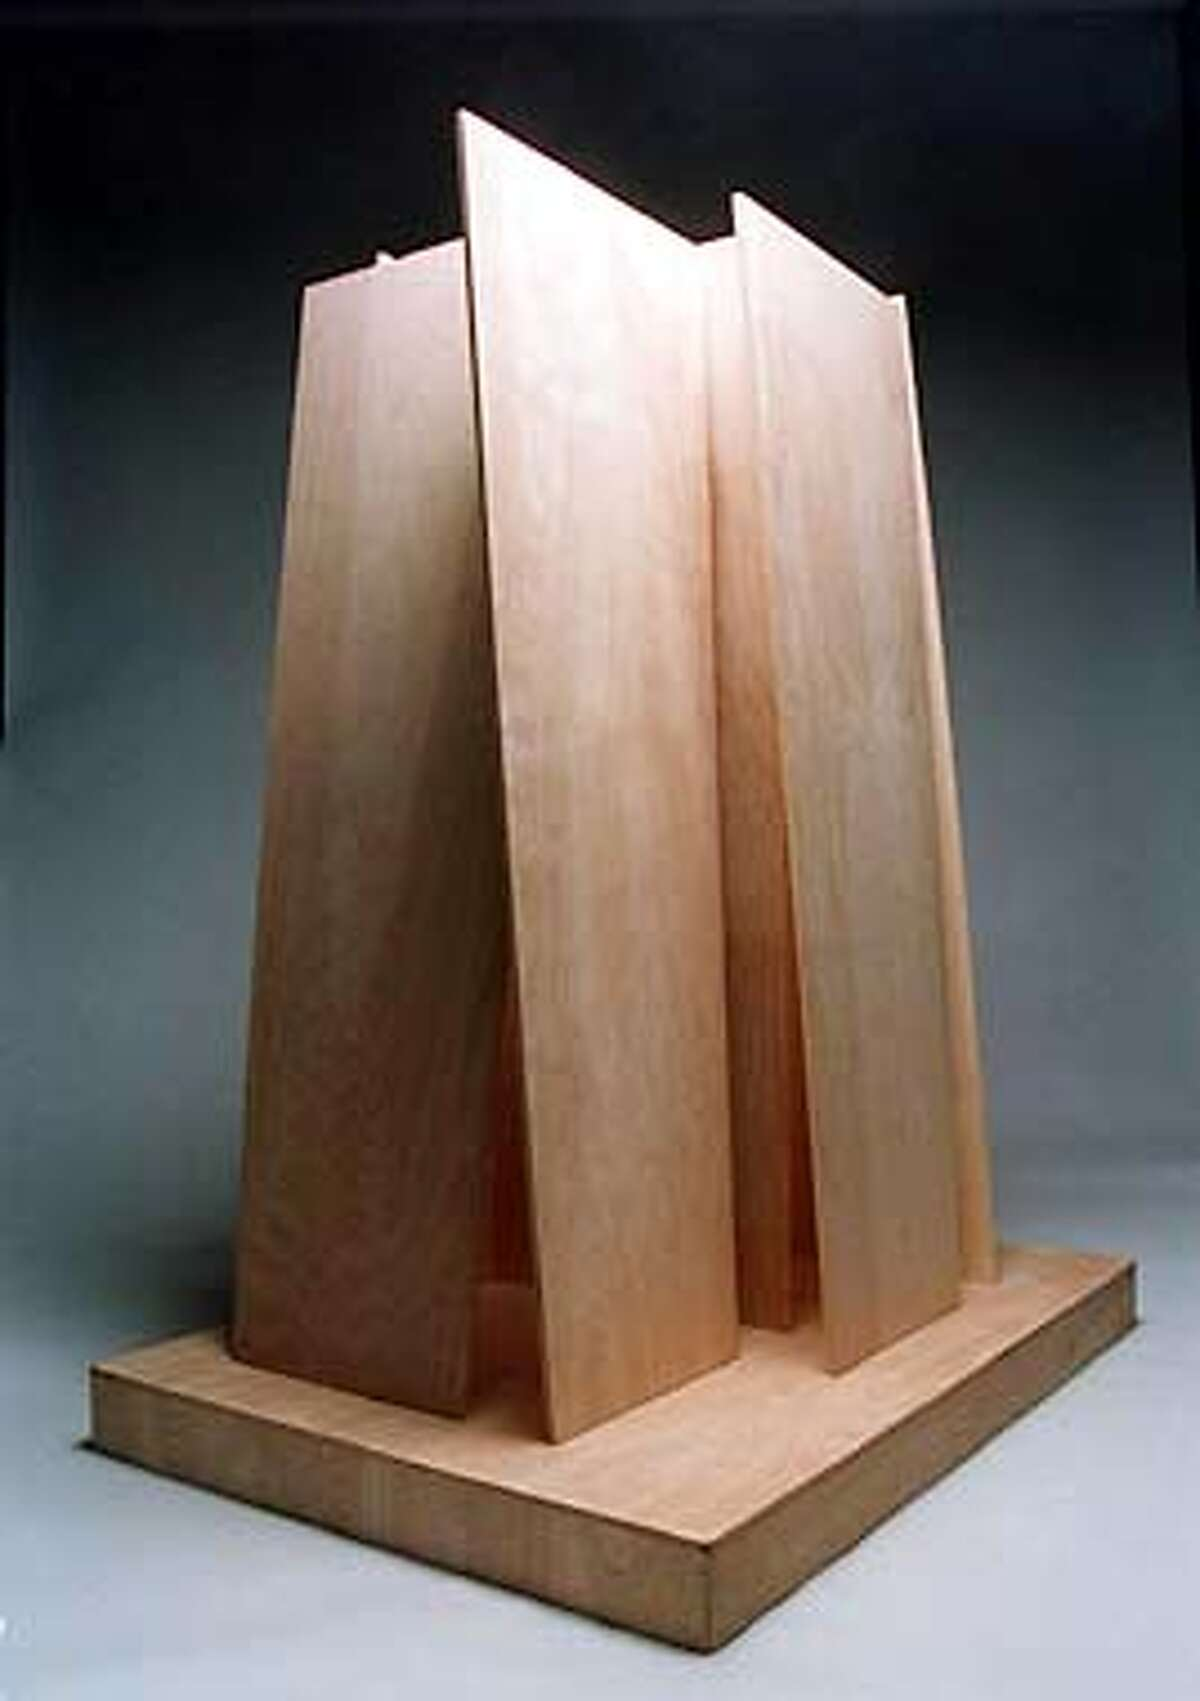 PROPOSED SCULPTURE BY RICHARD SERRA FOR THE PALACE OF THE LEGION OF HONOR